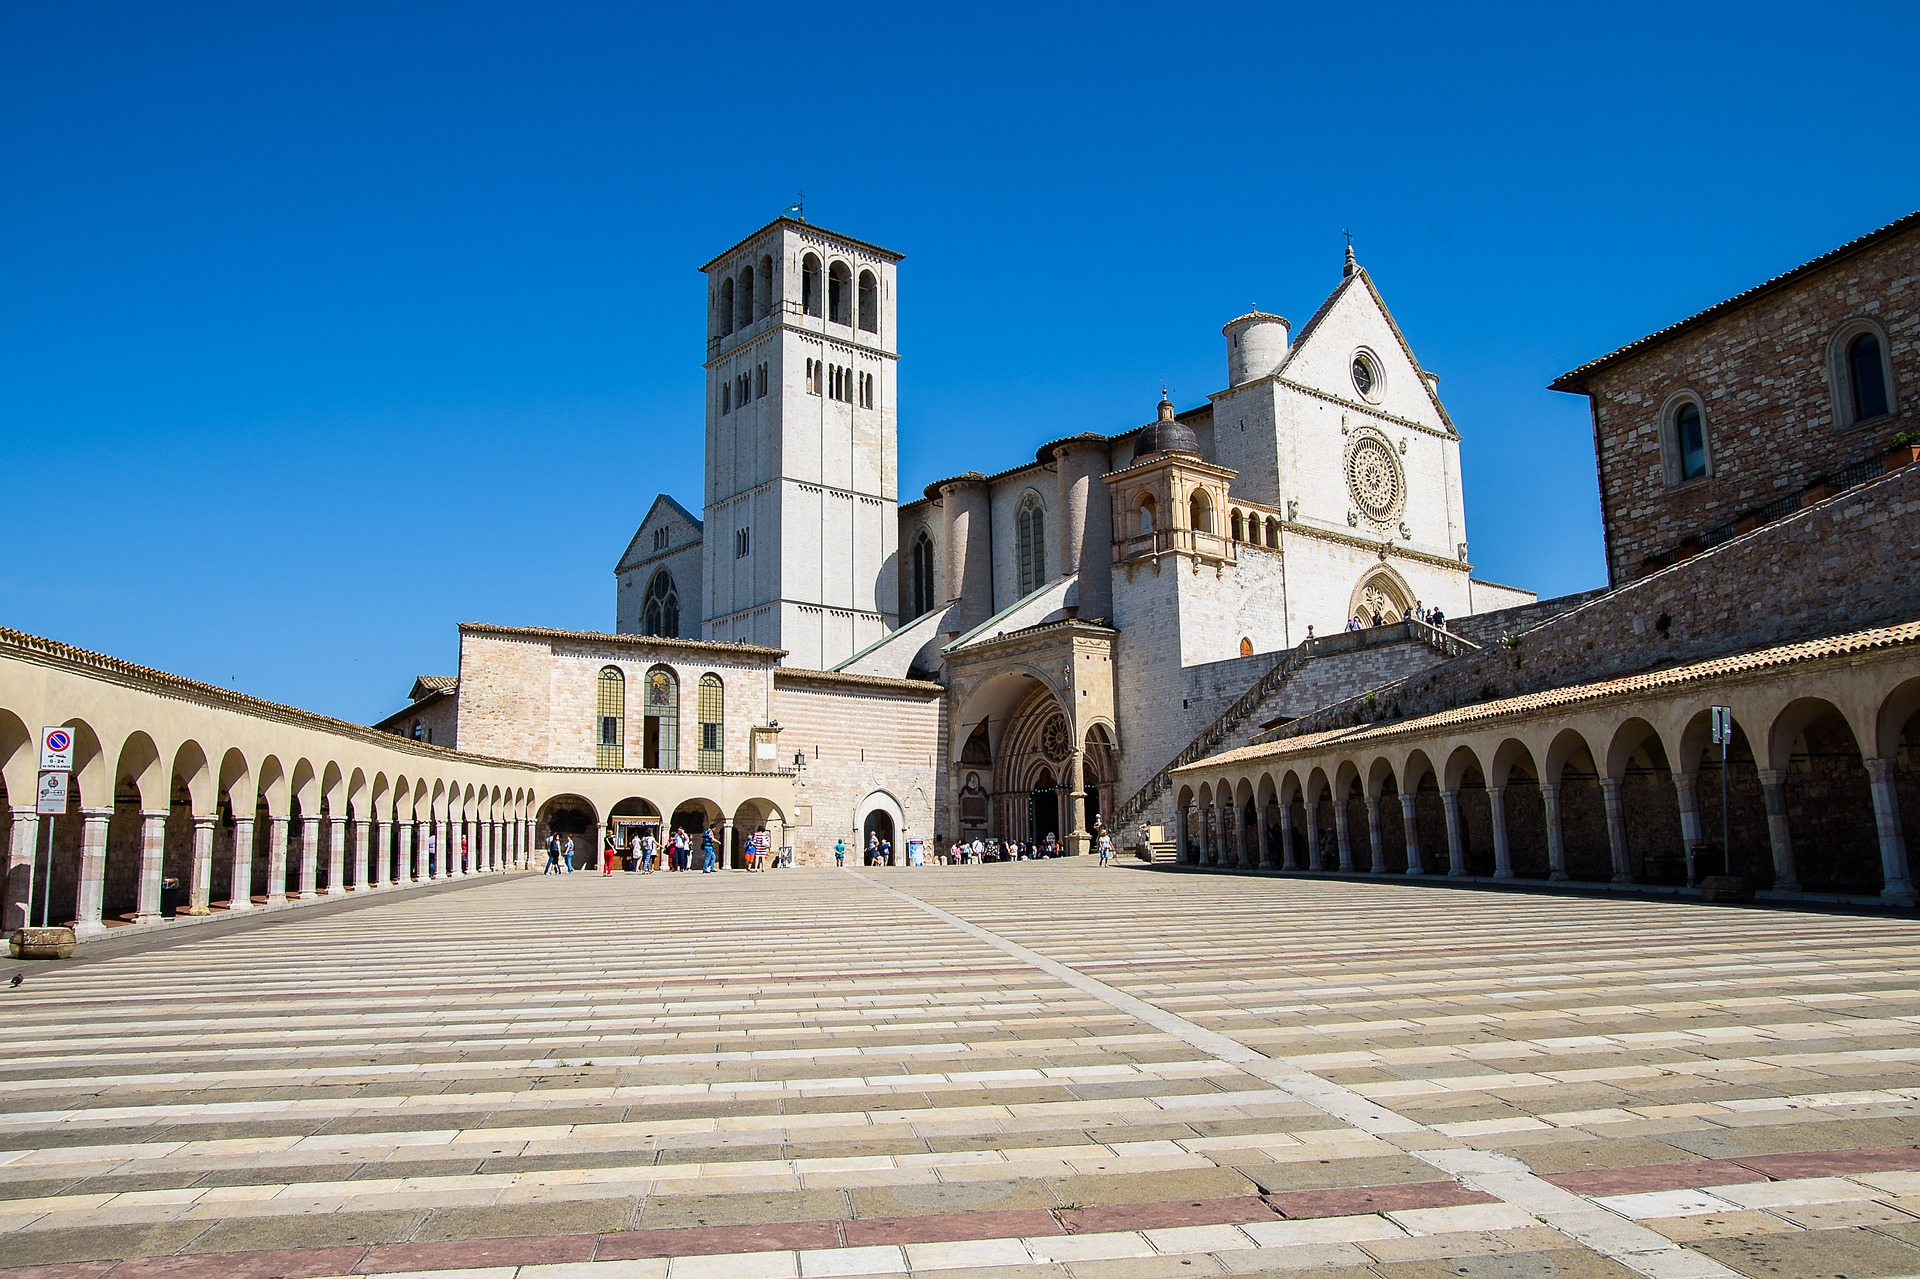 The architecture at Assisi